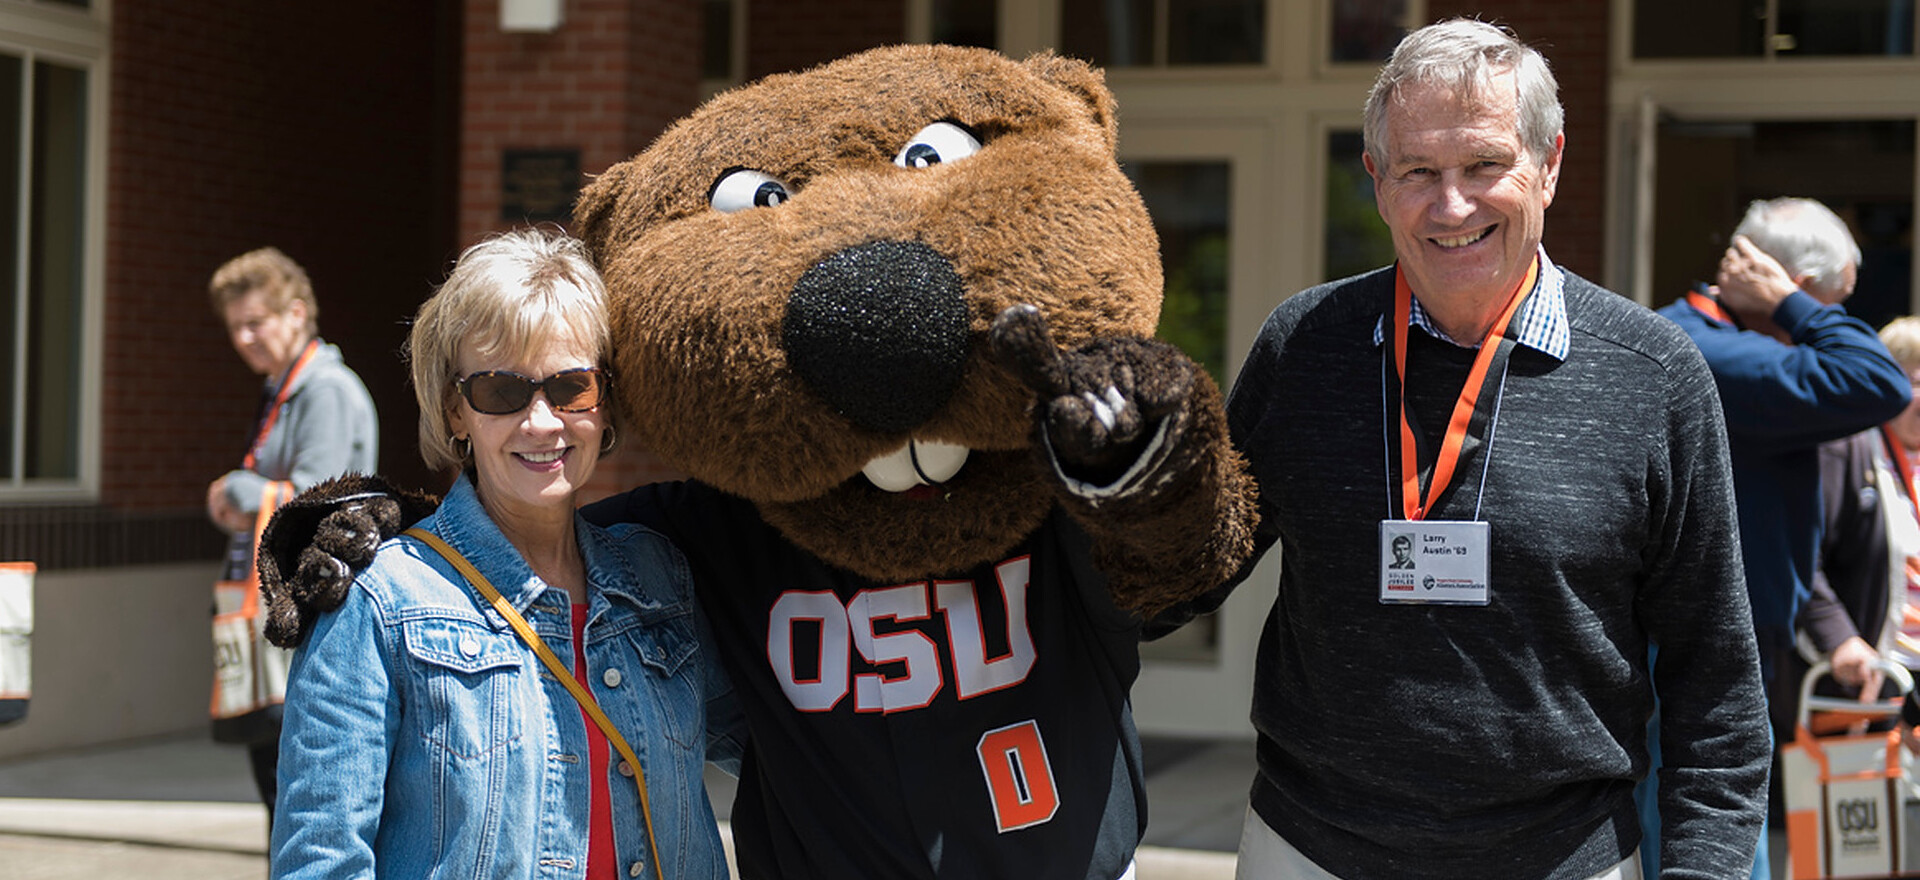 Alumni at a Class Reunion with Benny the Beaver